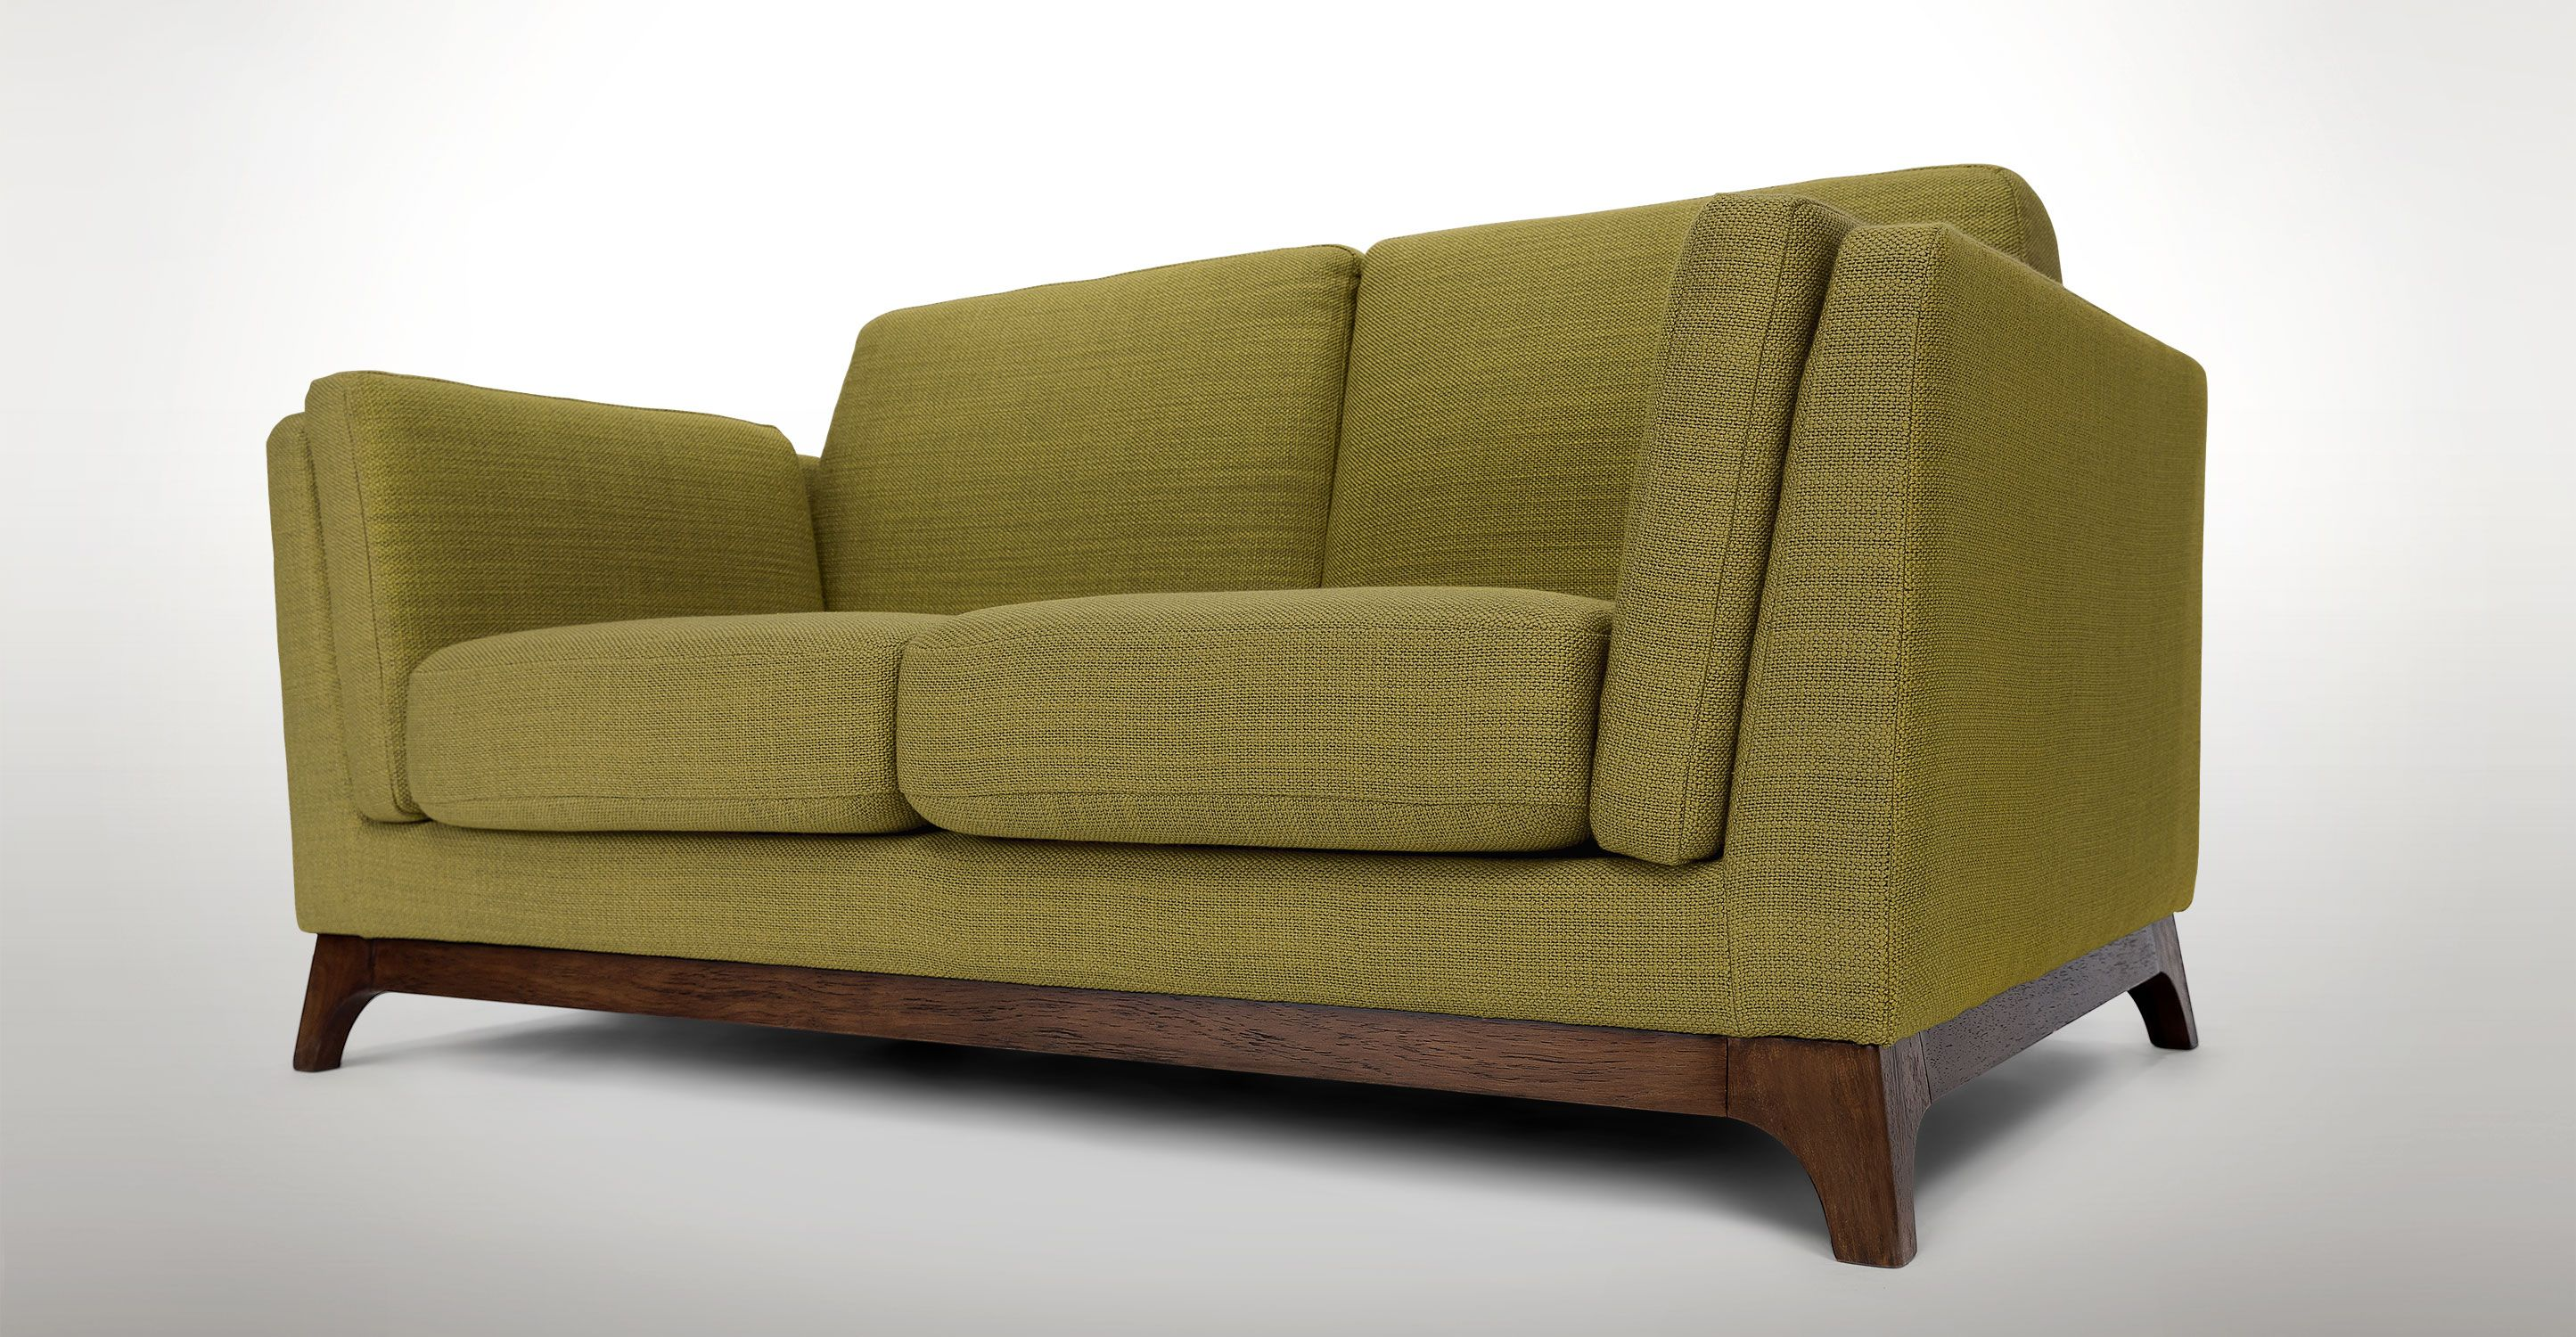 Green Fabric Loveseat - Solid Wood Legs | Article Ceni ...